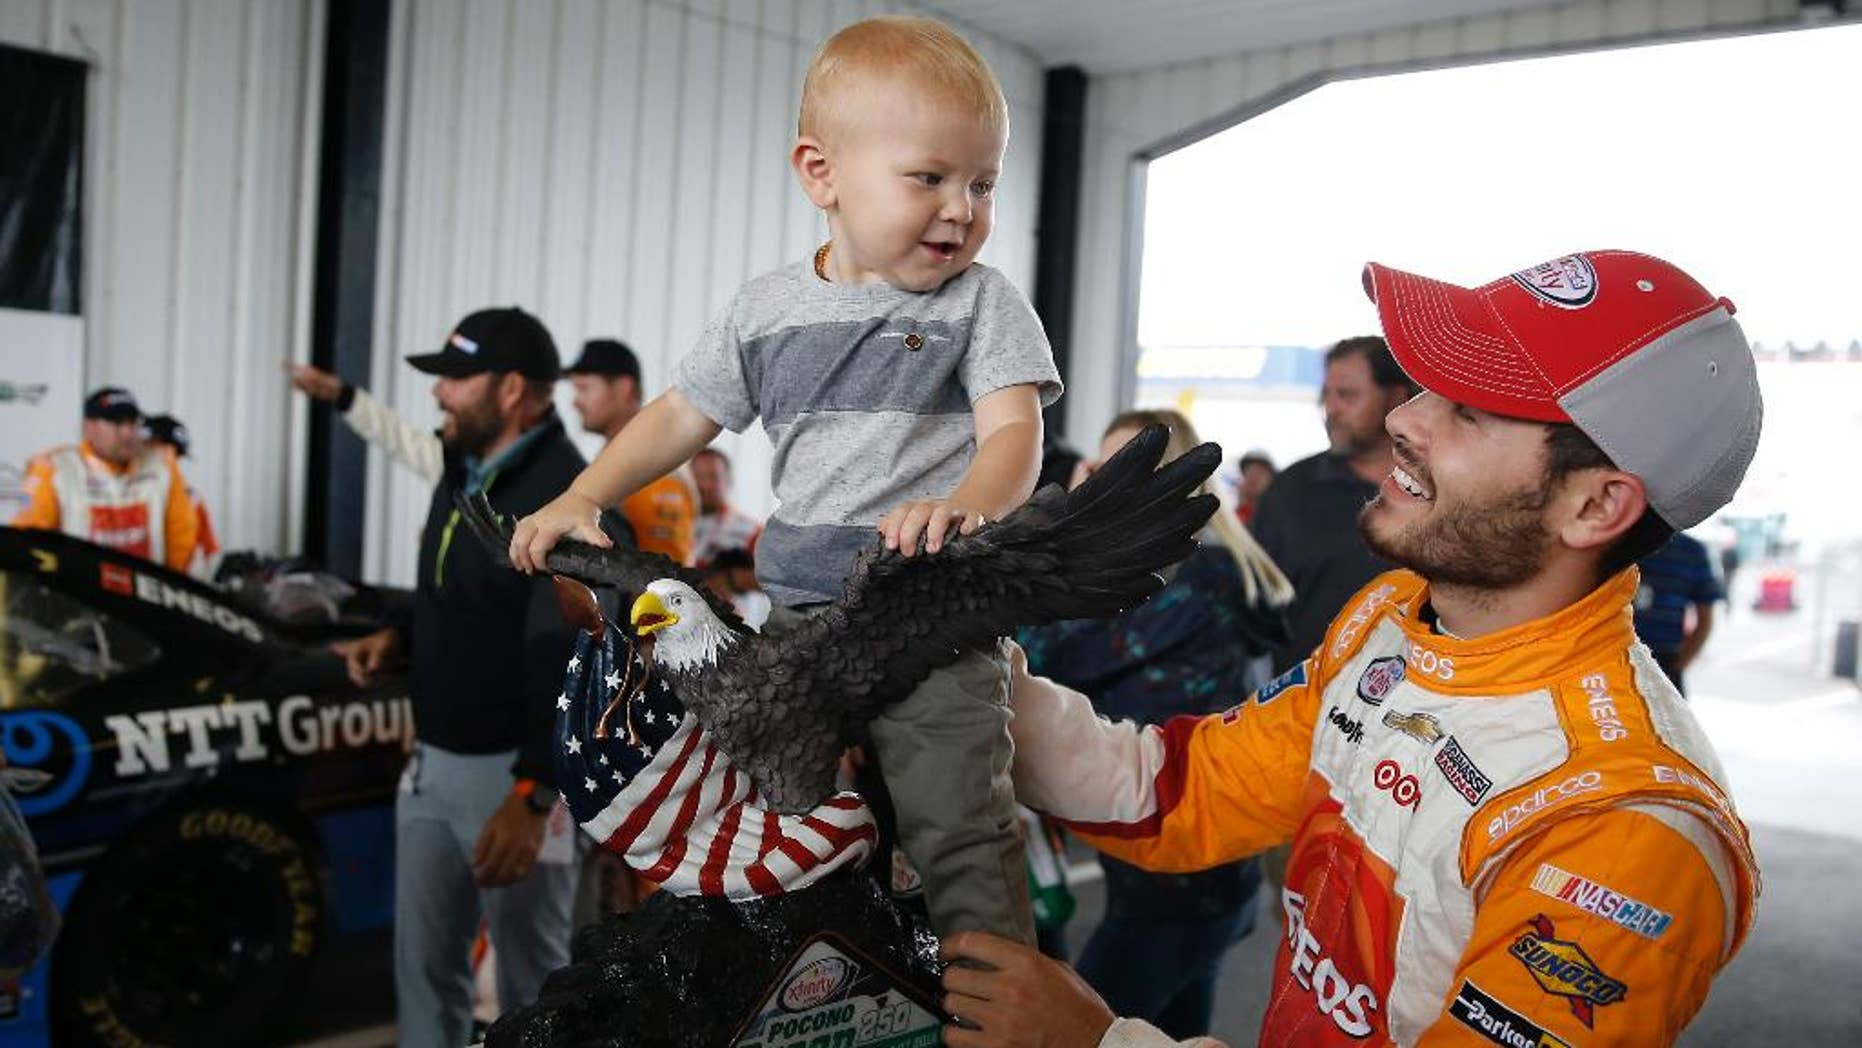 Kyle Larson, right, plays with his son Owen Larson and the trophy after he won the rain-shortened NASCAR Xfinity series auto race at Pocono Raceway, Saturday, June 4, 2016, in Long Pond, Pa. Larson led when the rain hit 53 laps into the scheduled 100-lap race and the race was called 1 hour, 35 minutes after the red flag came out. (AP Photo/Matt Slocum)